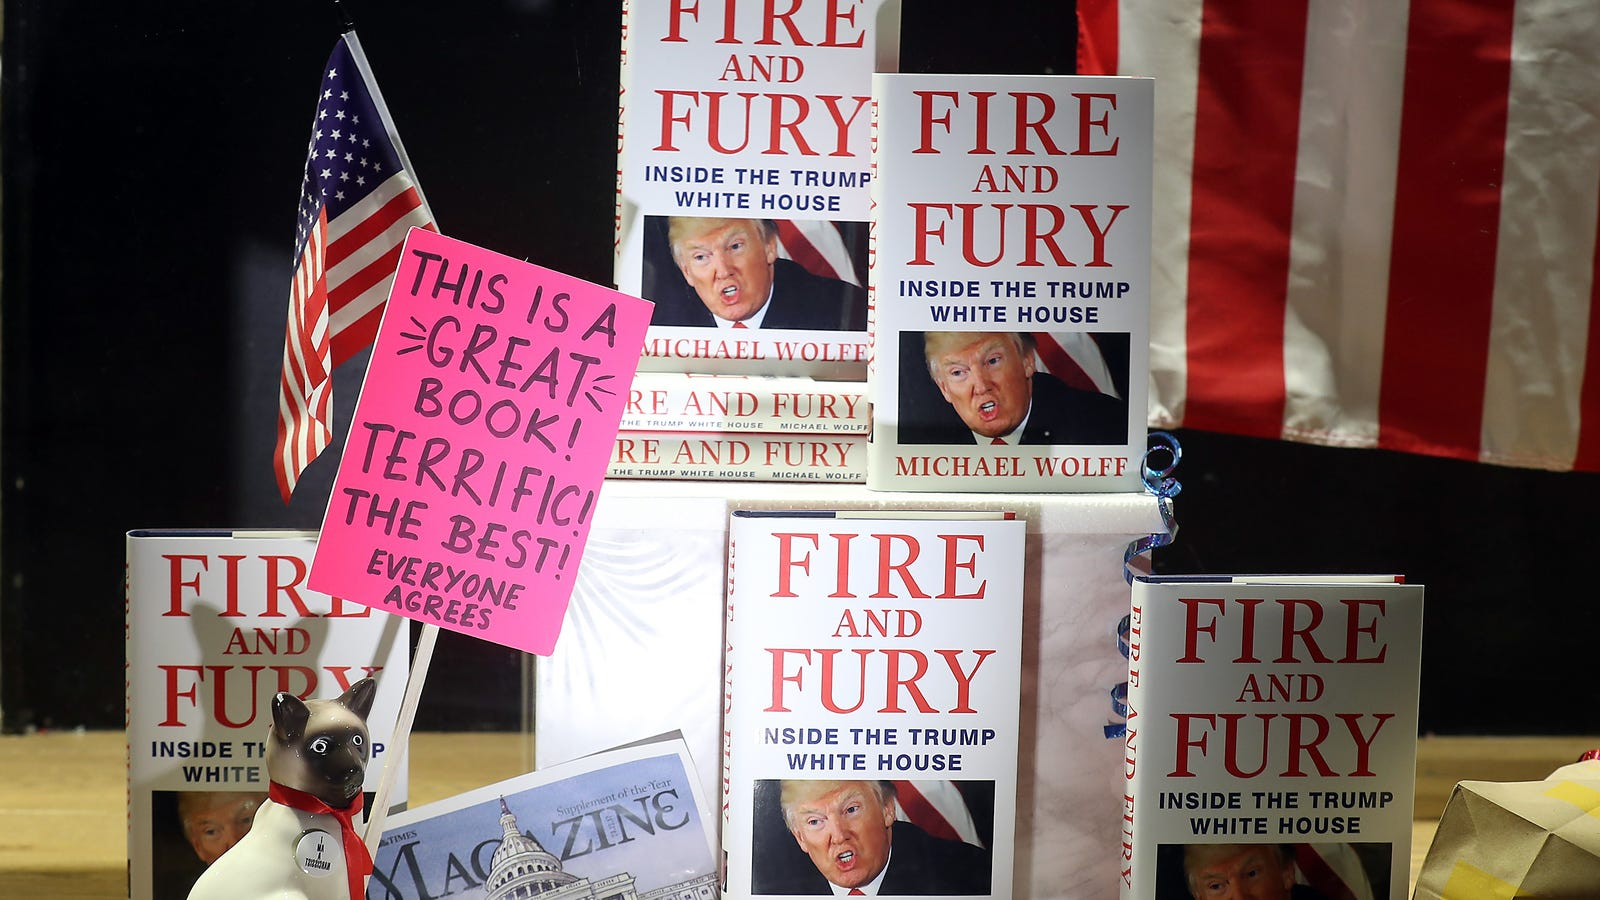 Fire And Fury doesn't tell us anything we don't already know—and that's why it's important